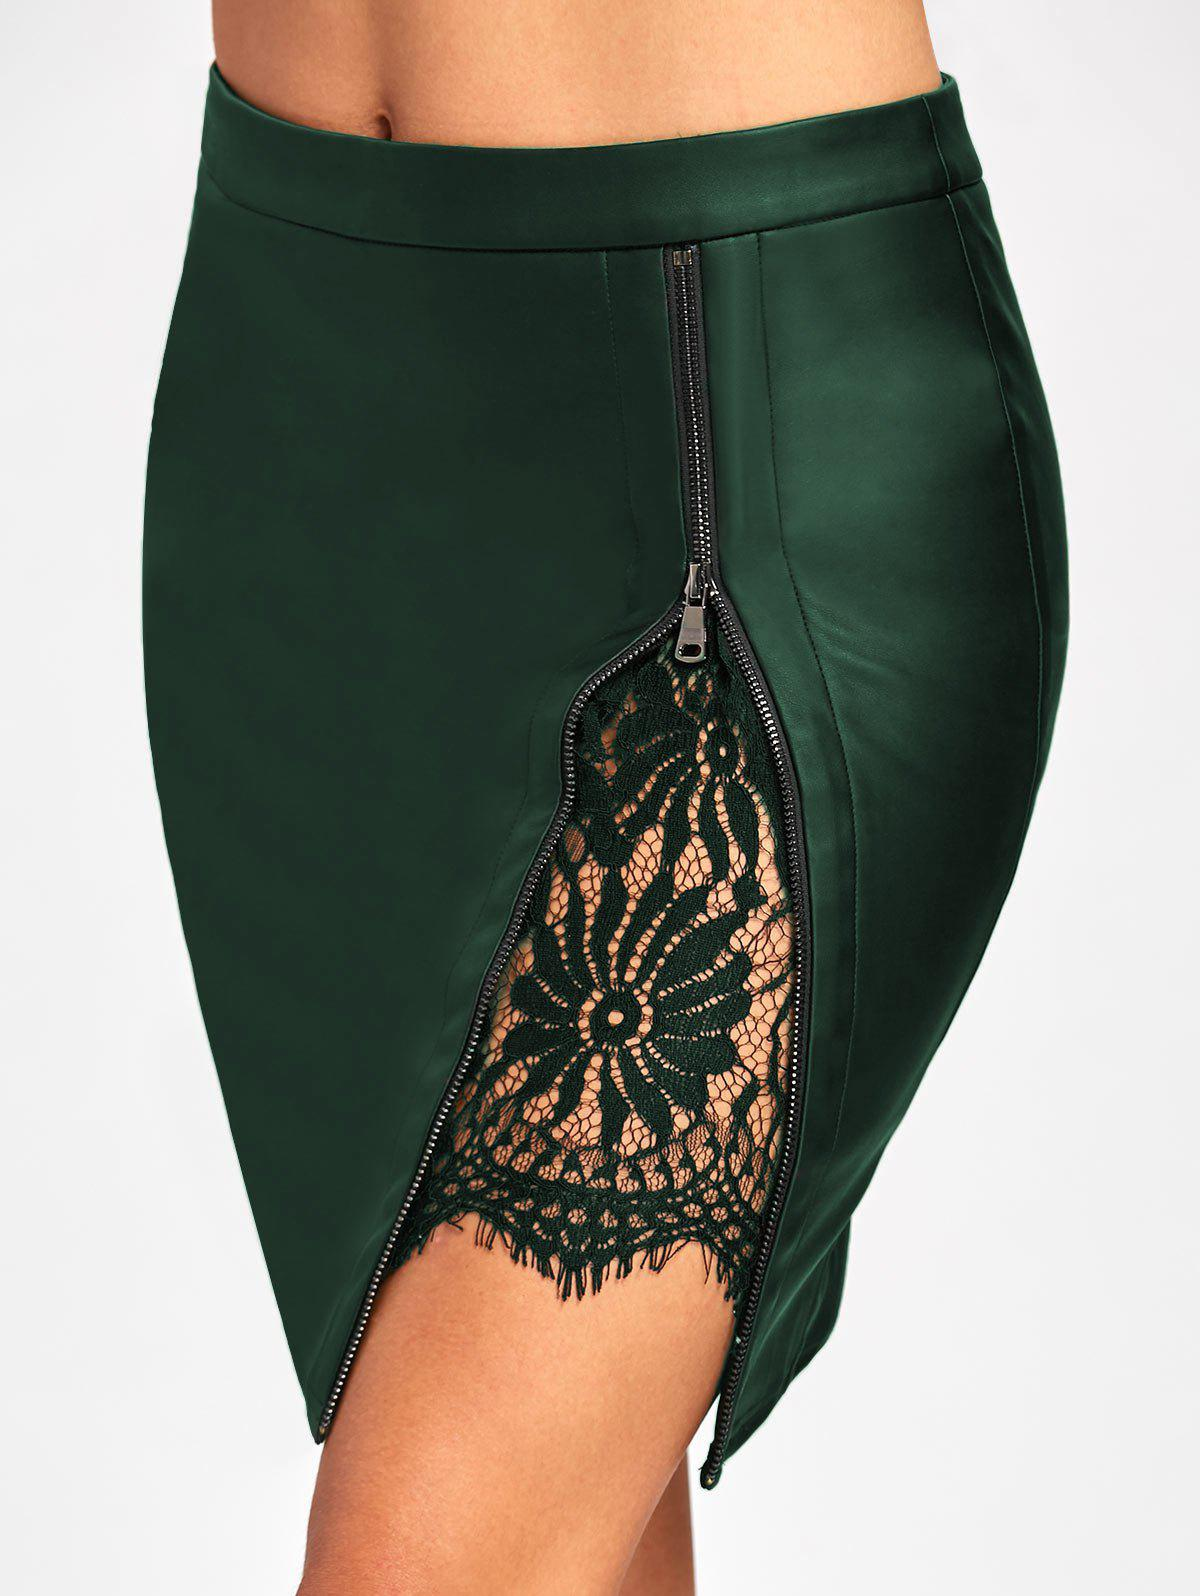 Lace Insert Faux Leather Bodycon SkirtWOMEN<br><br>Size: L; Color: DEEP GREEN; Material: Faux Leather,Polyester; Length: Mini; Silhouette: Bodycon; Pattern Type: Solid; Embellishment: Lace; Season: Fall,Spring,Winter; Weight: 0.2700kg; Package Contents: 1 x Skirt;